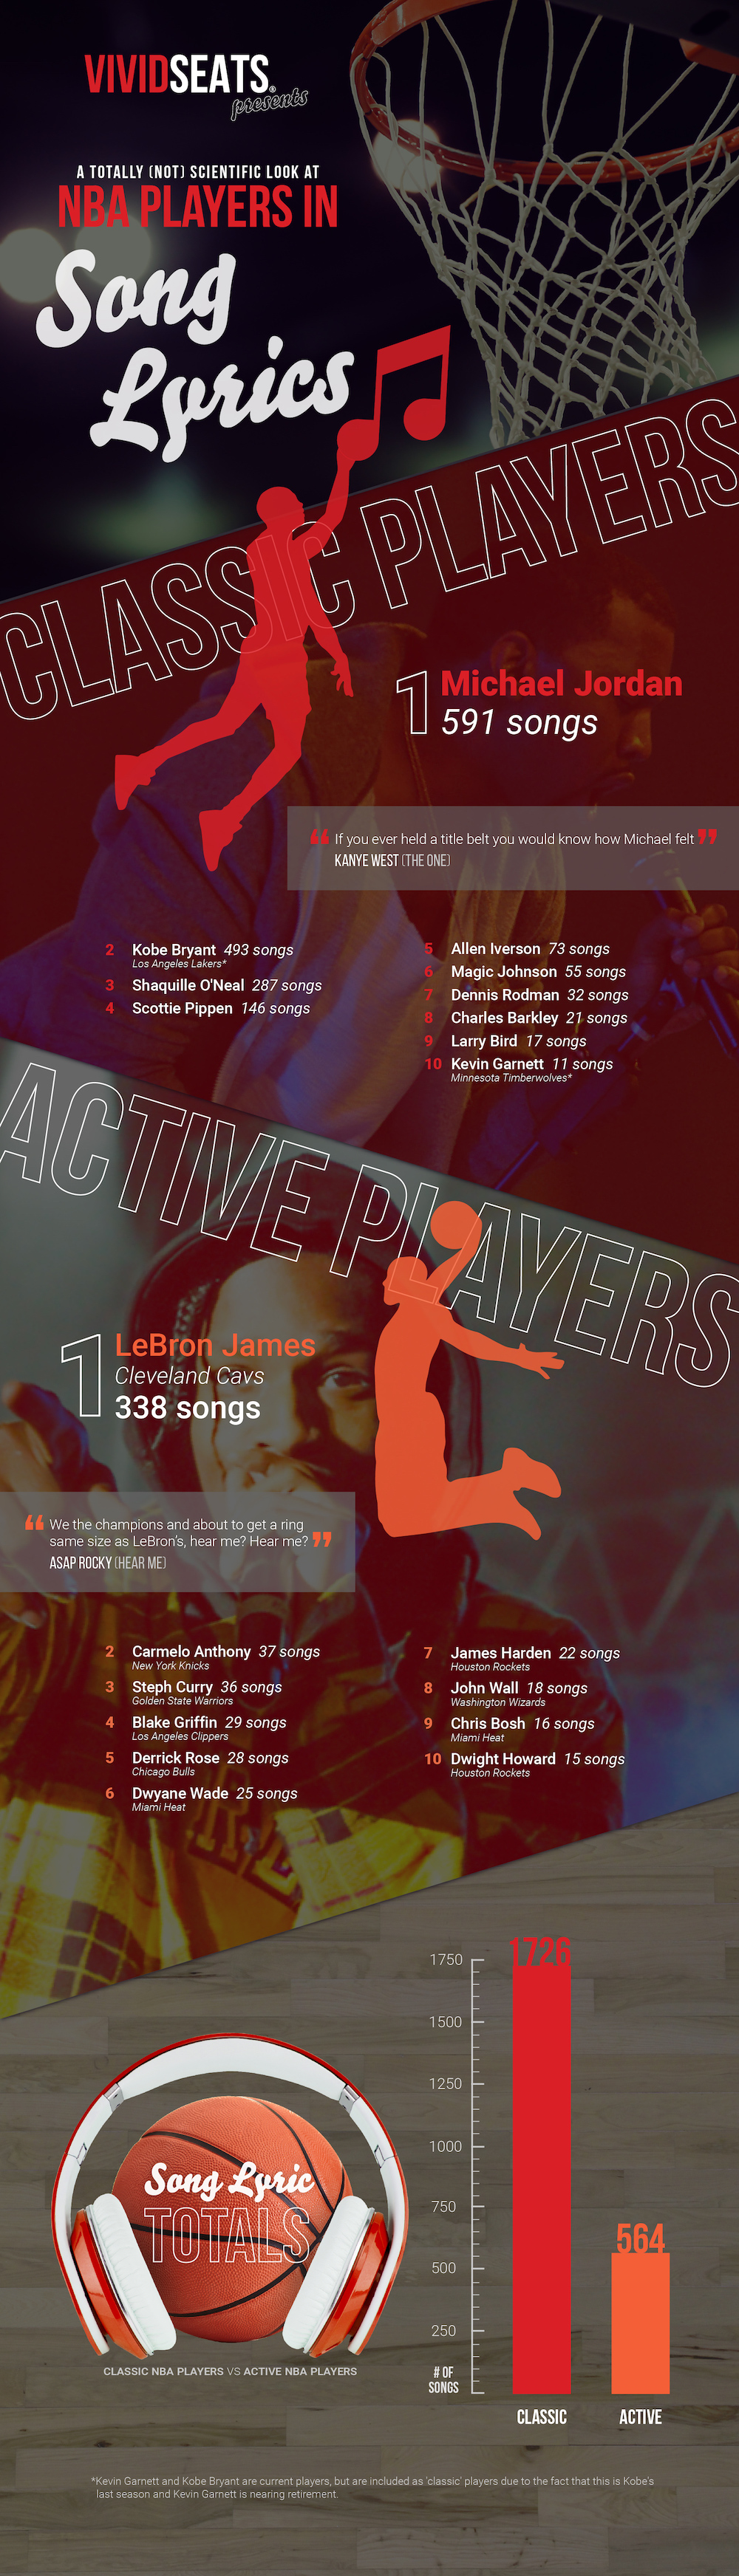 A Totally (Not) Scientific Look at NBA Players in Song Lyrics